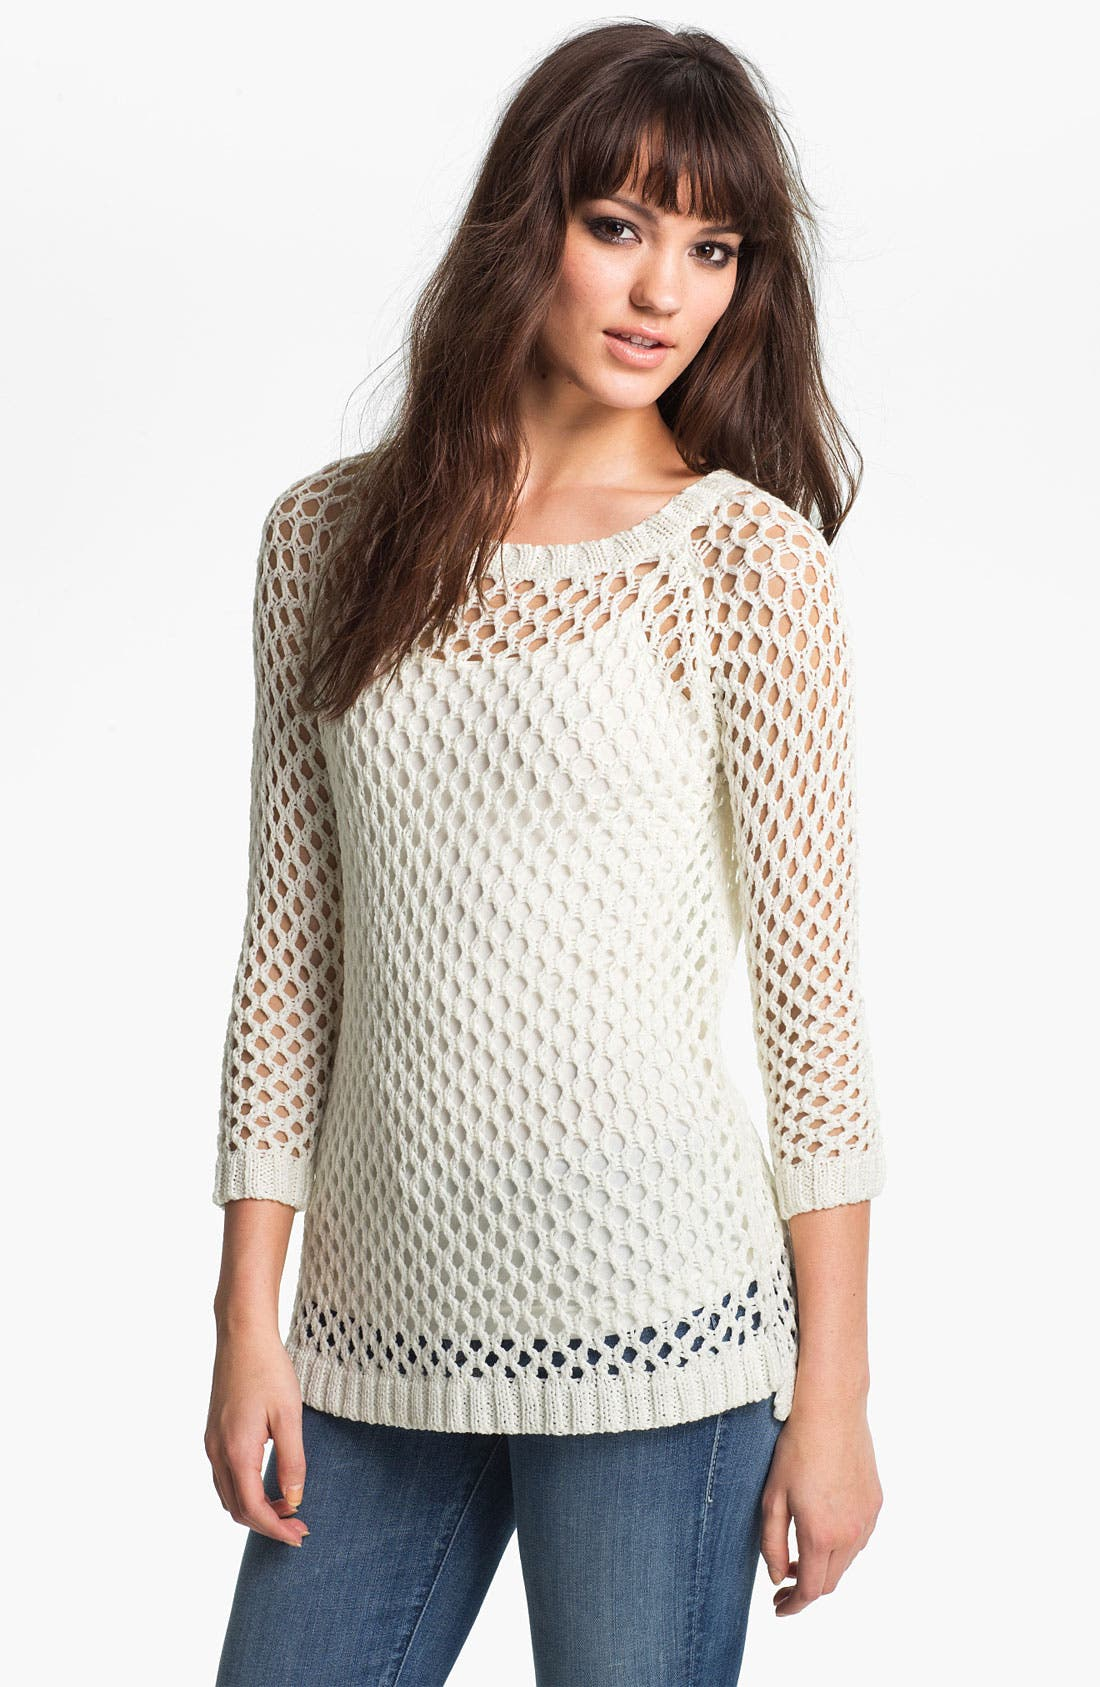 Alternate Image 1 Selected - Soft Joie 'Addler' Net Knit Sweater